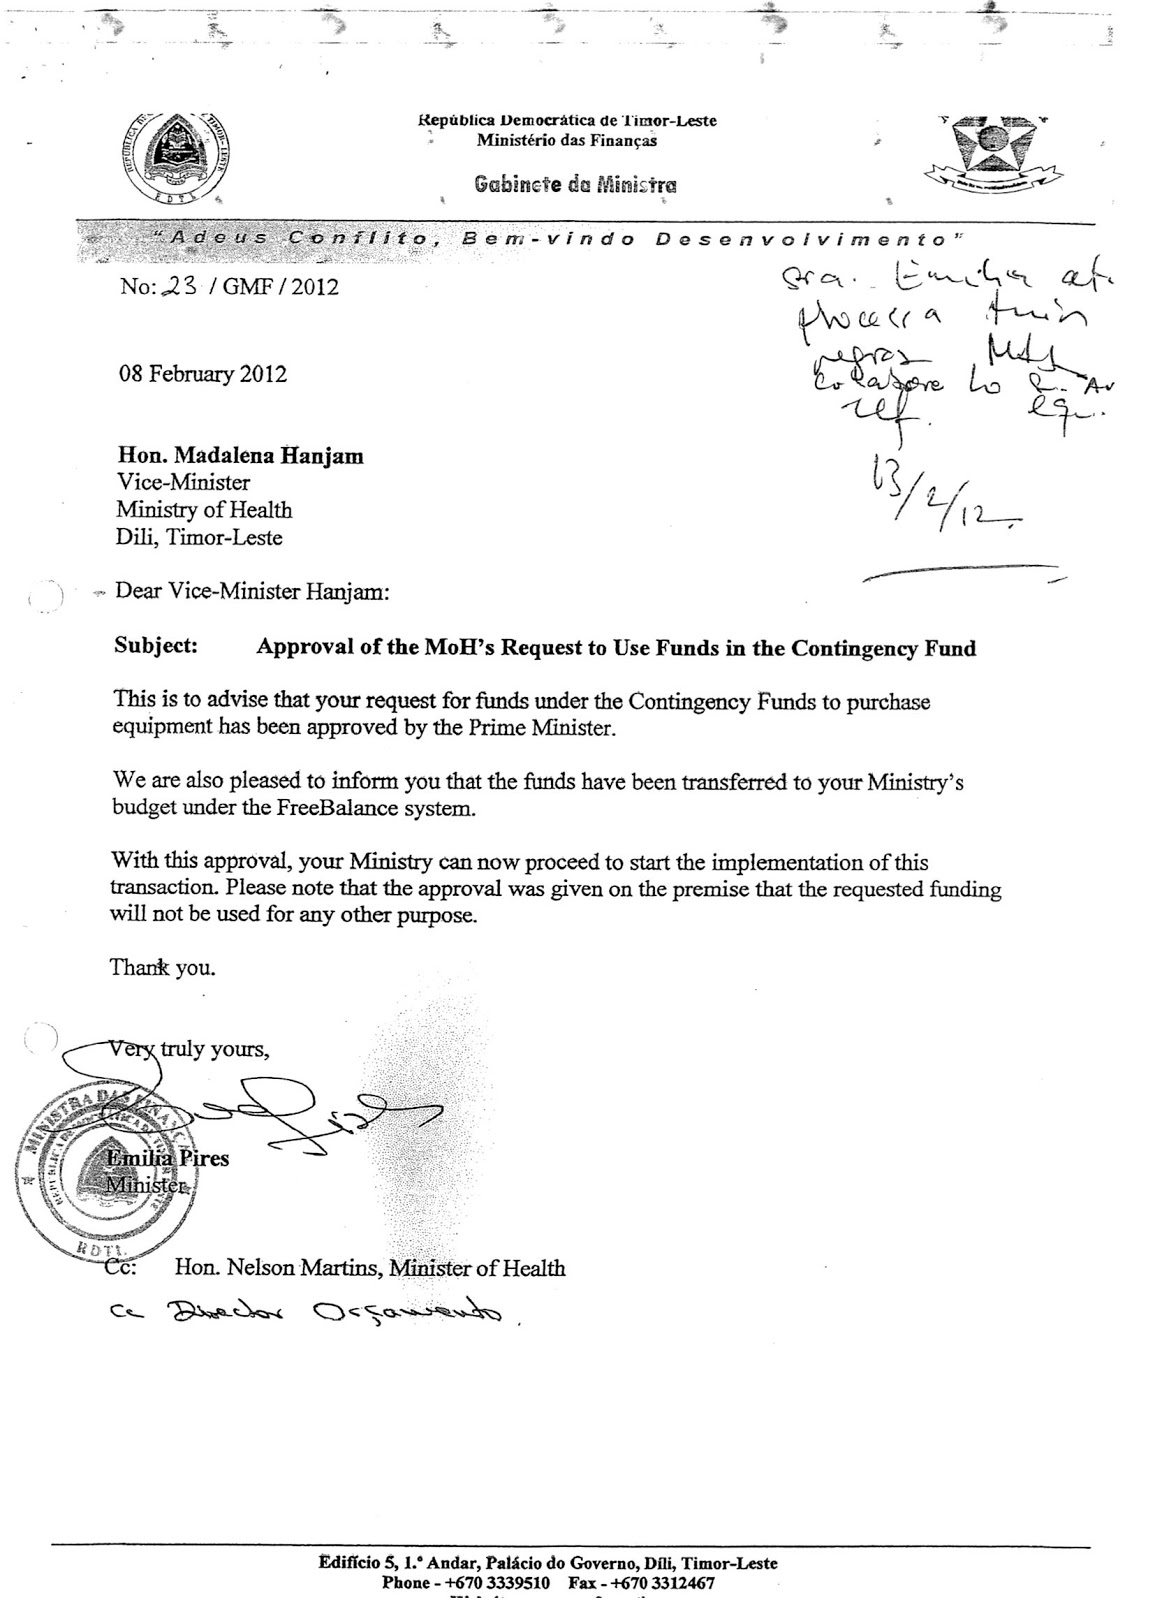 Letter Requesting Budget Approval